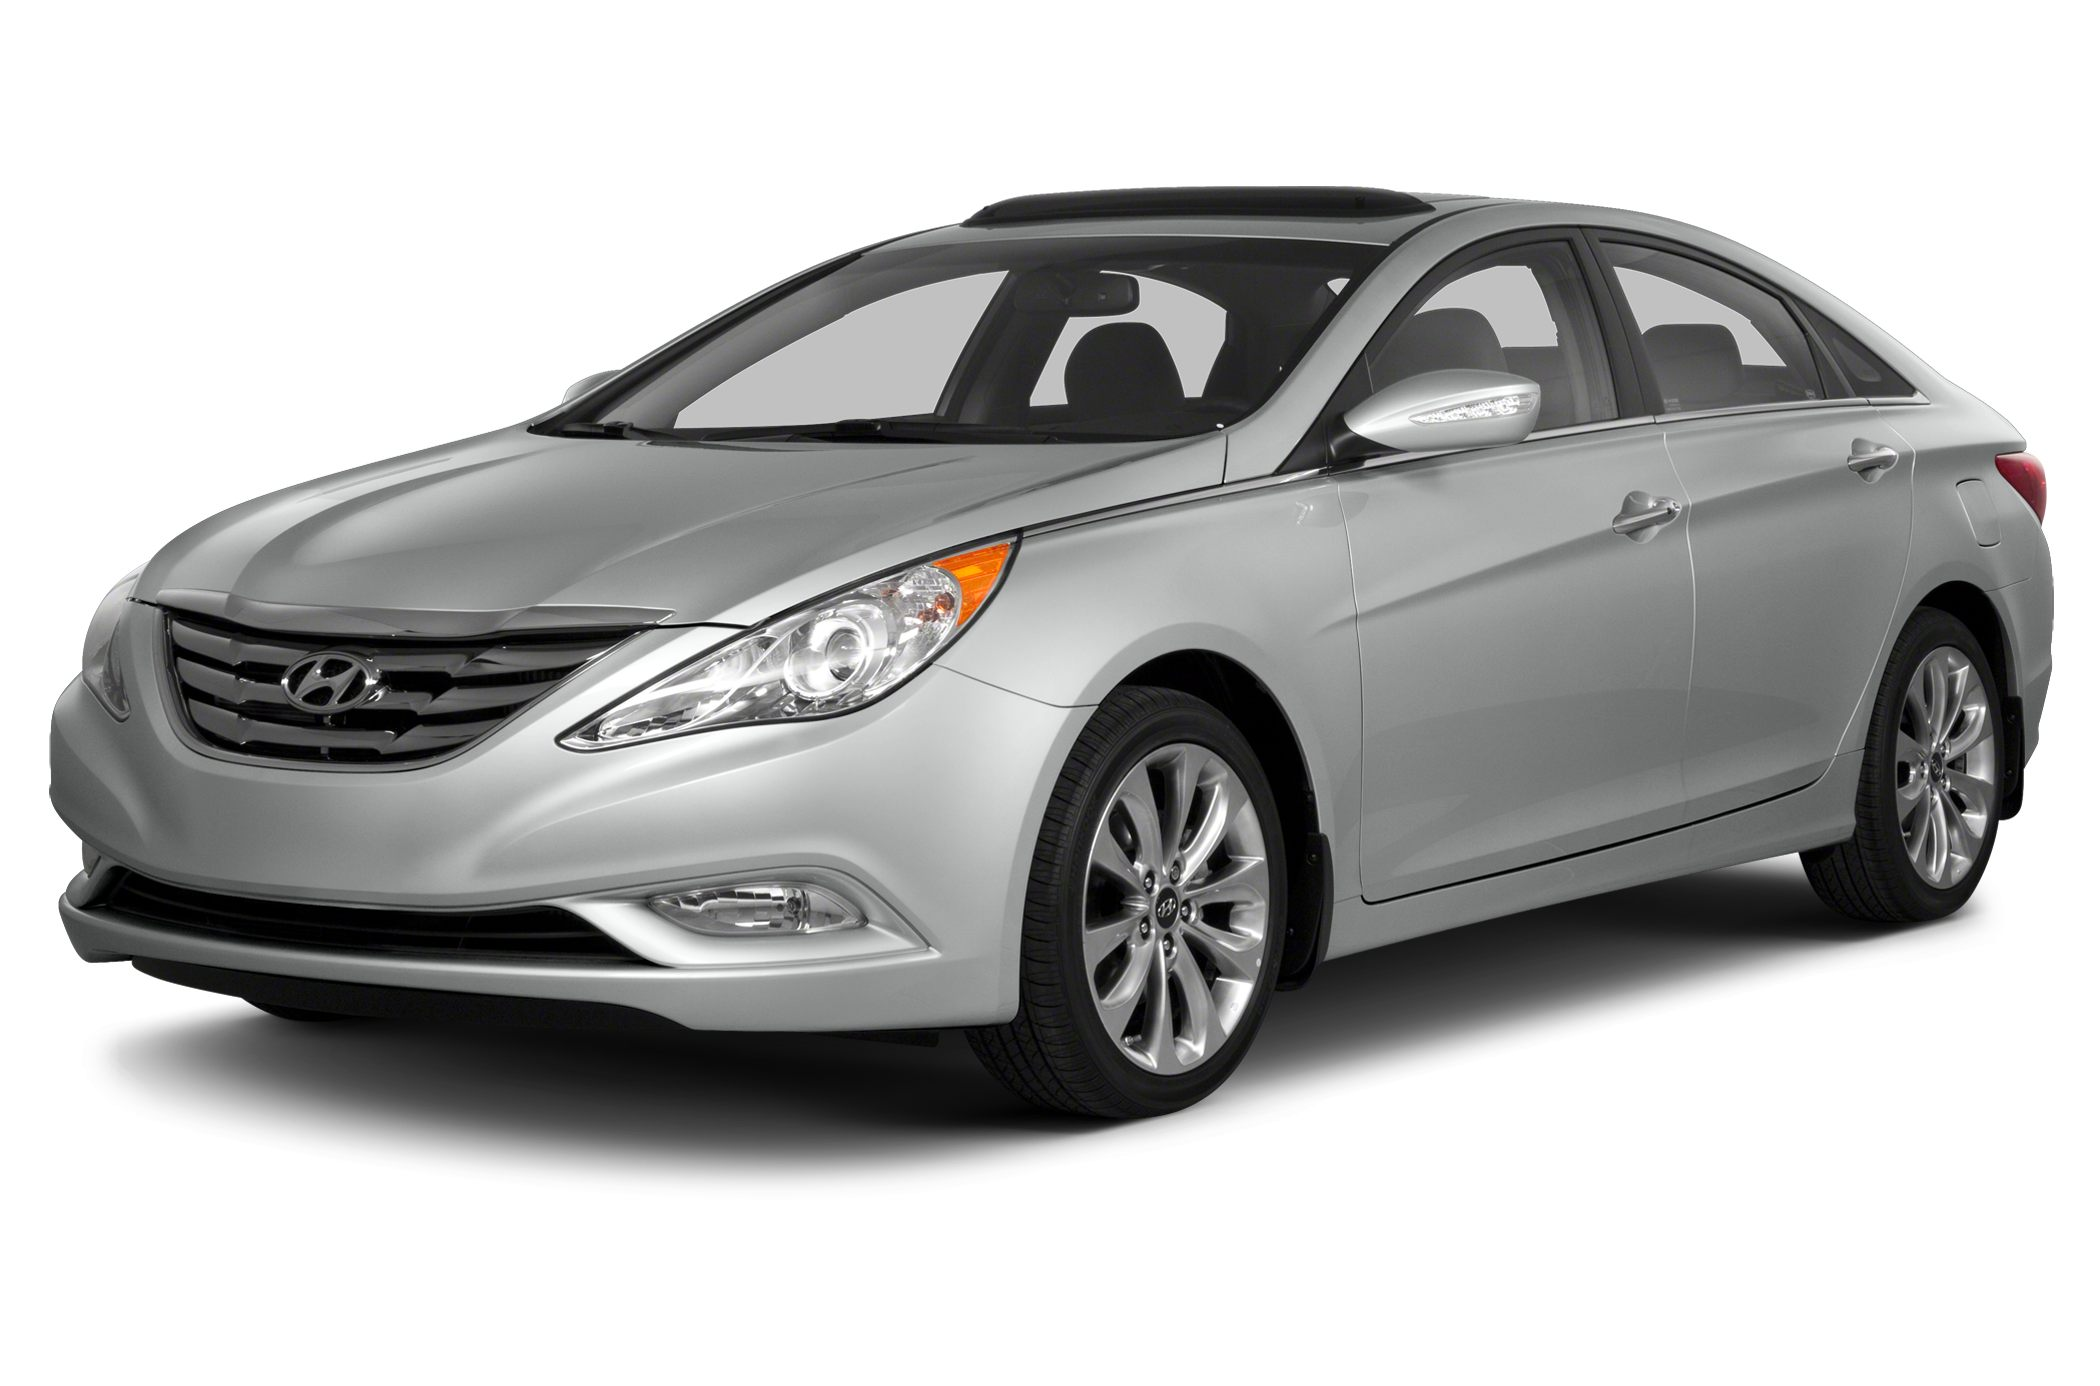 2013 Hyundai Sonata GLS Sedan for sale in Chester for $15,895 with 17,592 miles.